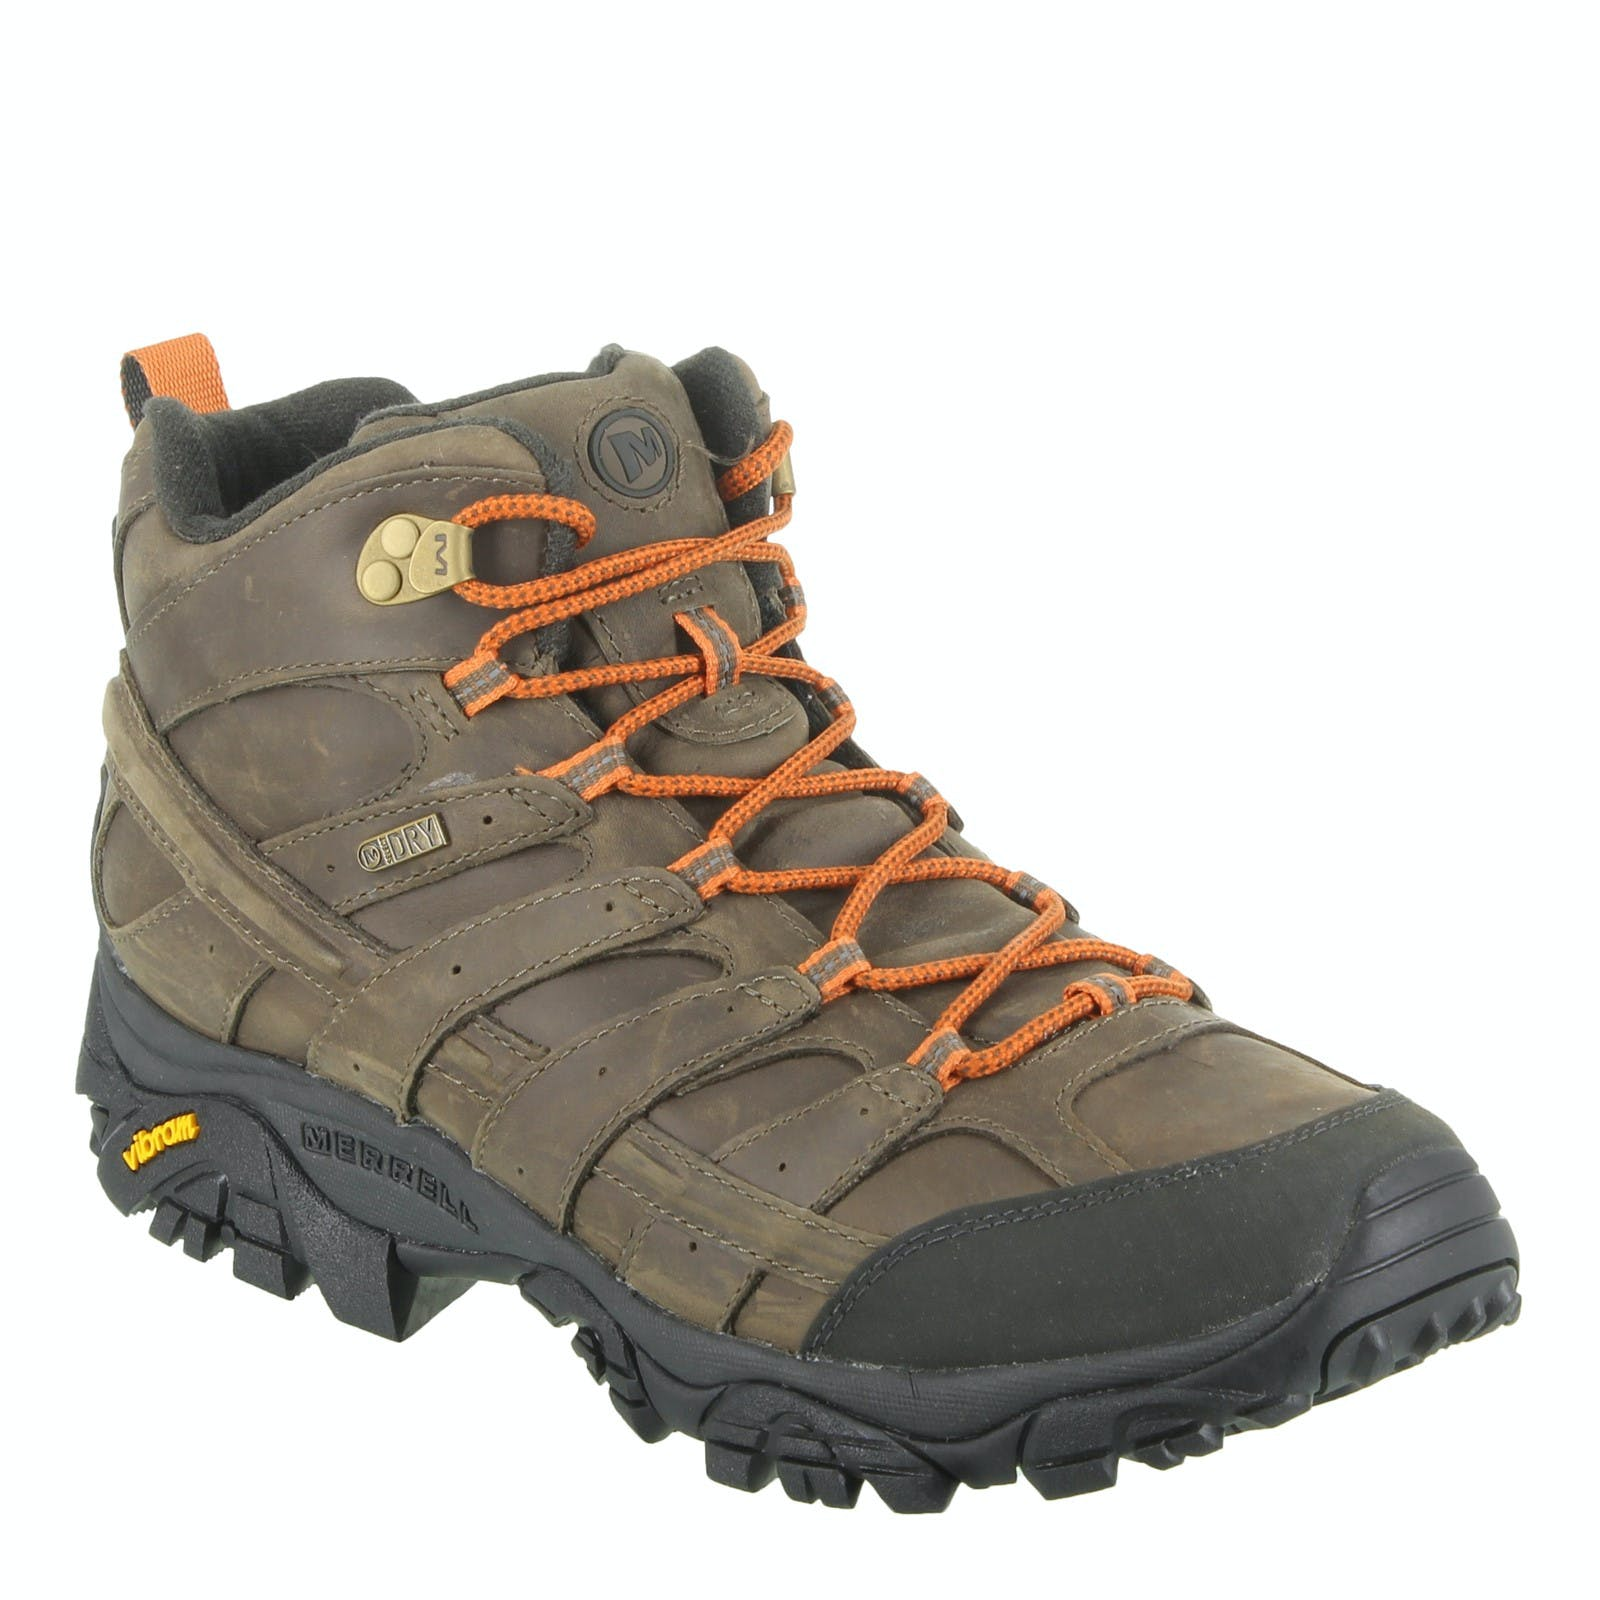 MERRELL - MOAB 2 PRIME MID WP M - 9.5 - Canteen